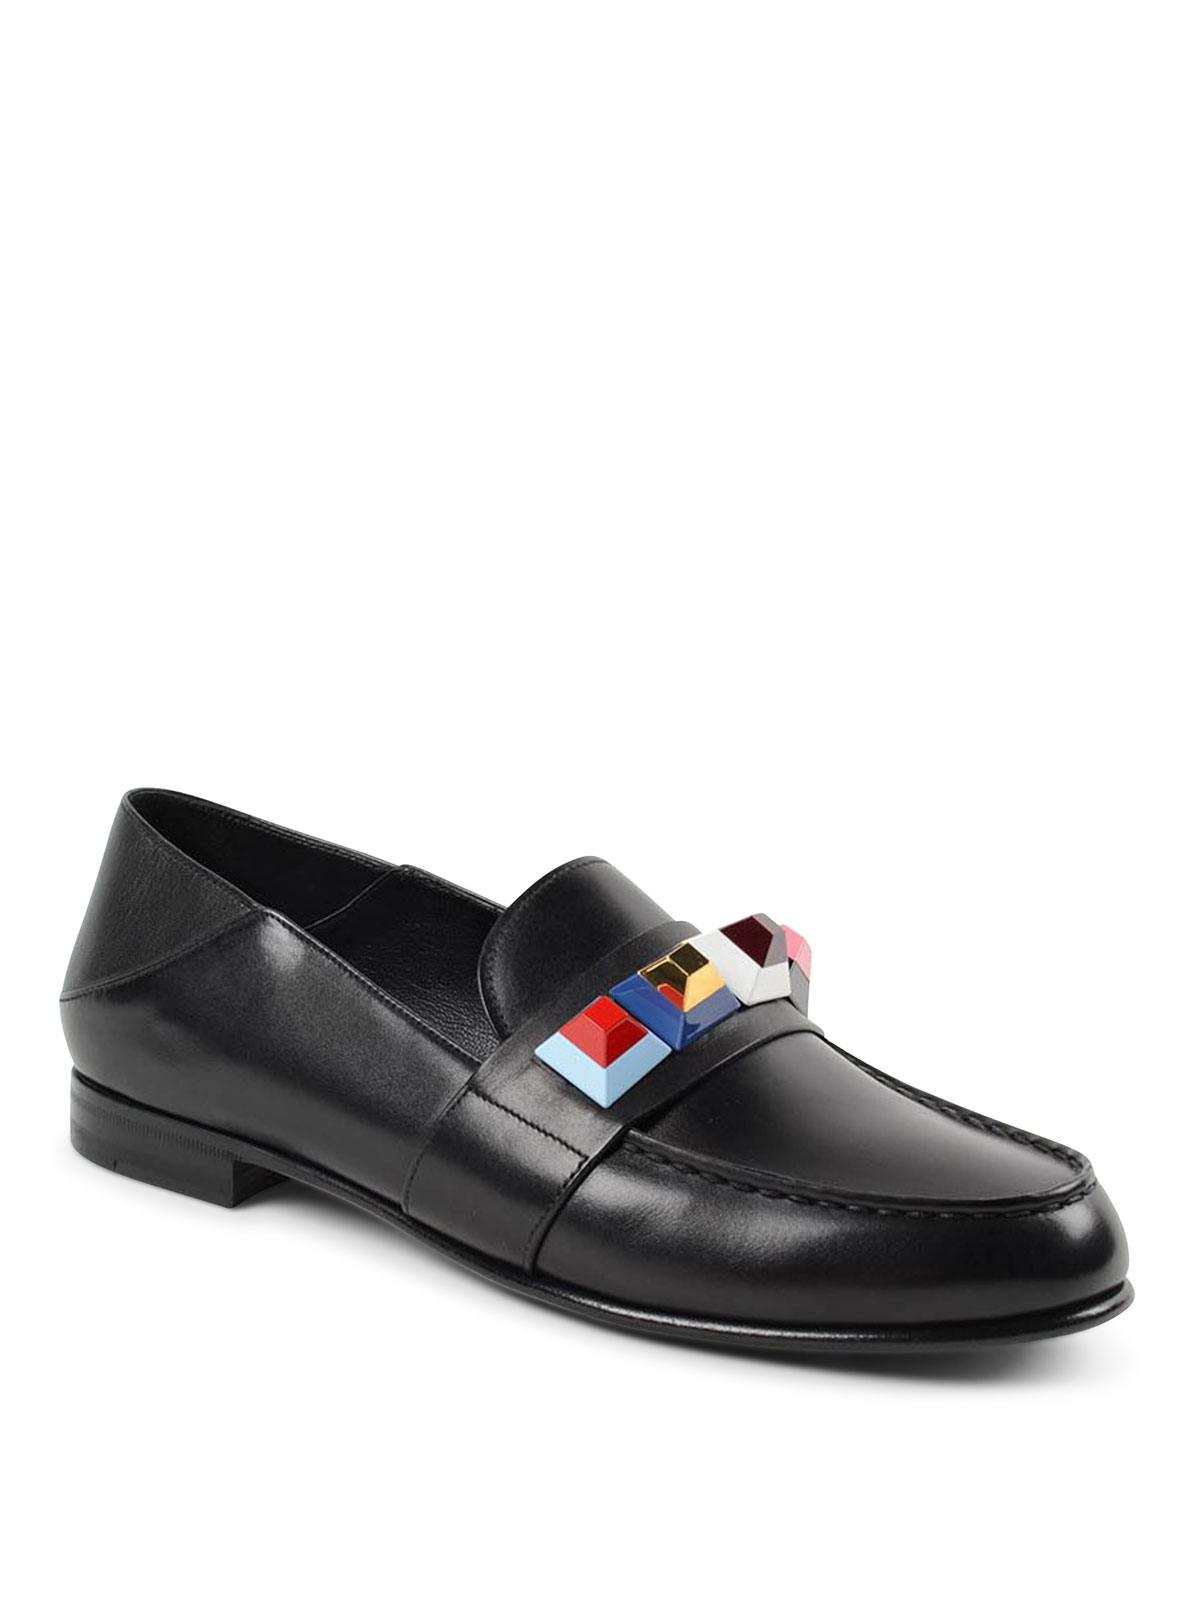 0bce965404e Fendi online loafers slippers shearling and leather loafers jpg 1200x1600 Fendi  loafers